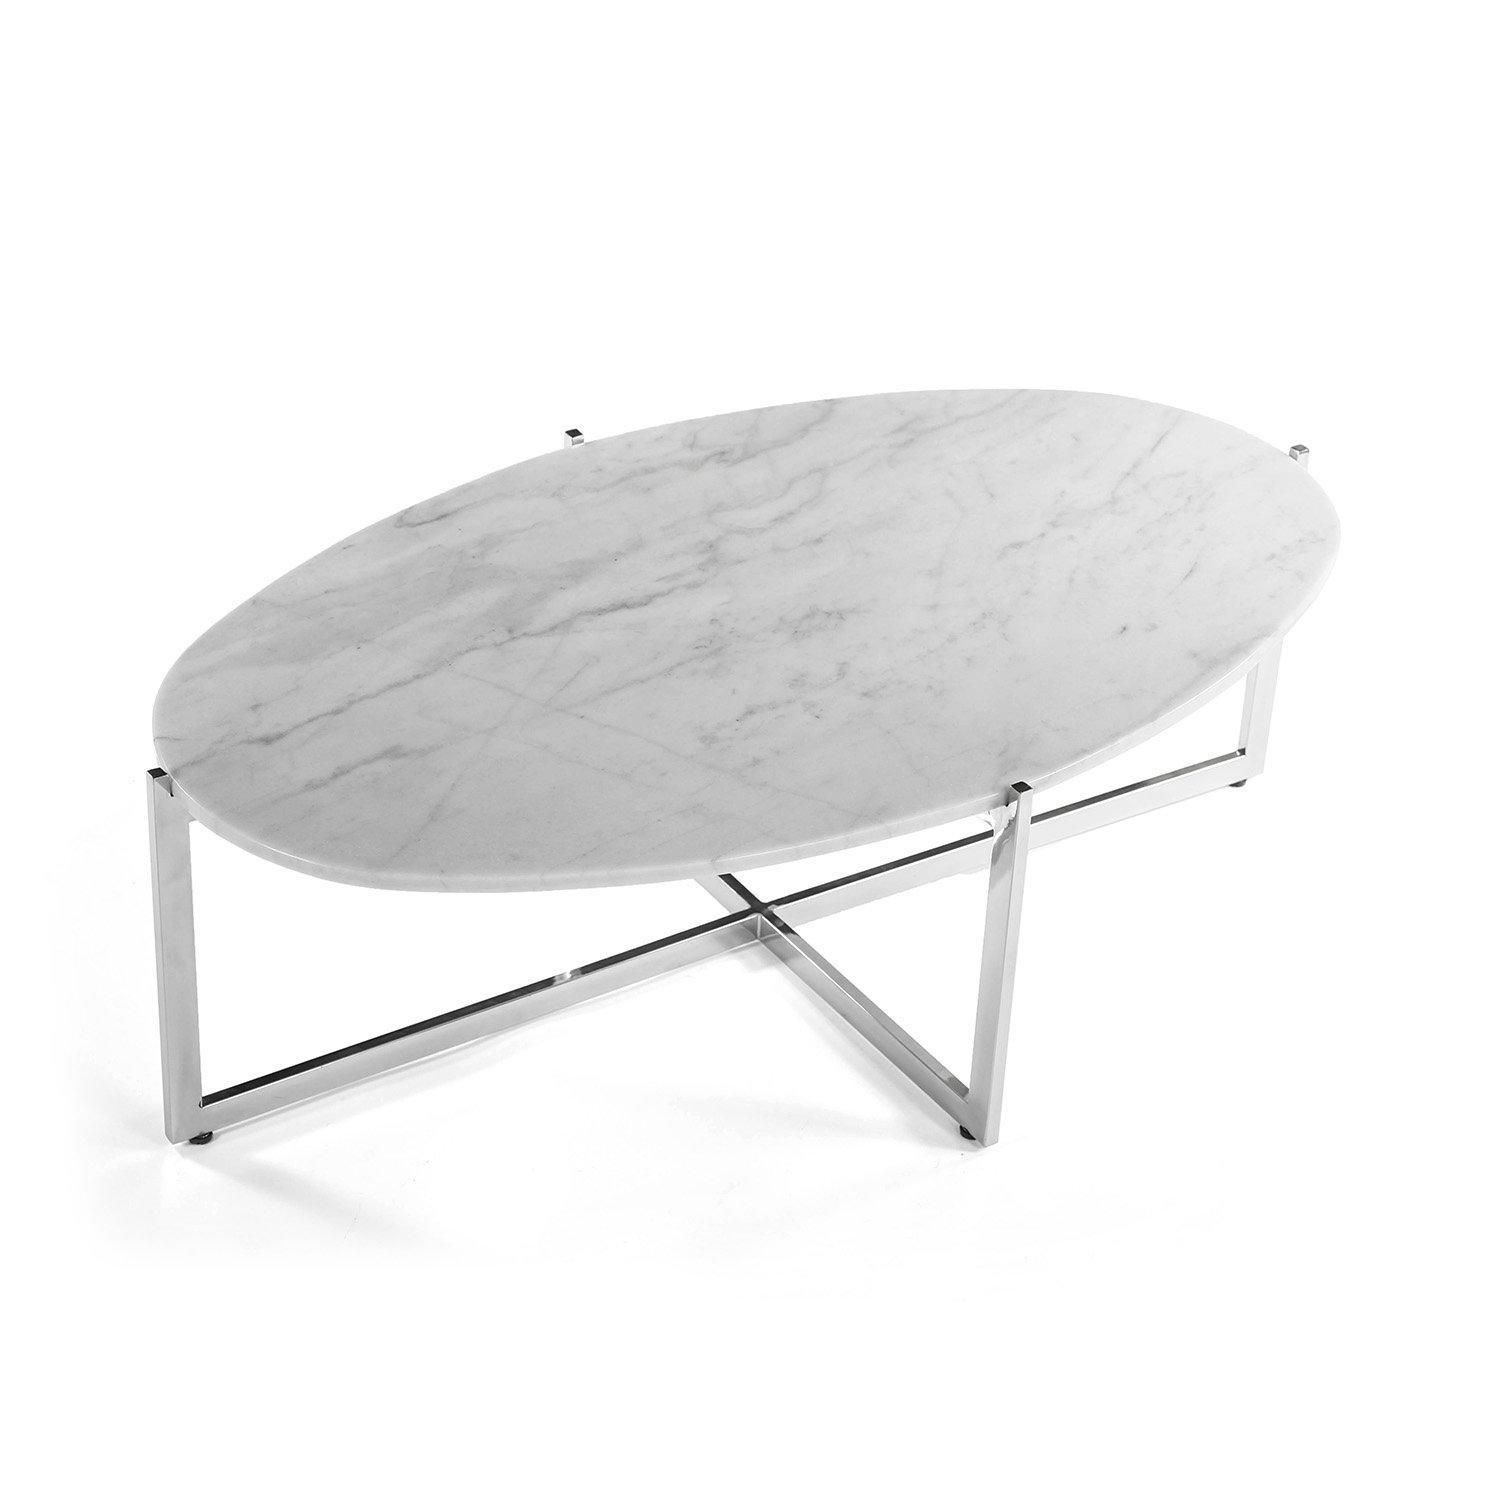 Lucerne Coffee Table Marble Coffee Table Marble Cocktail Table Oval Coffee Tables [ 1500 x 1500 Pixel ]